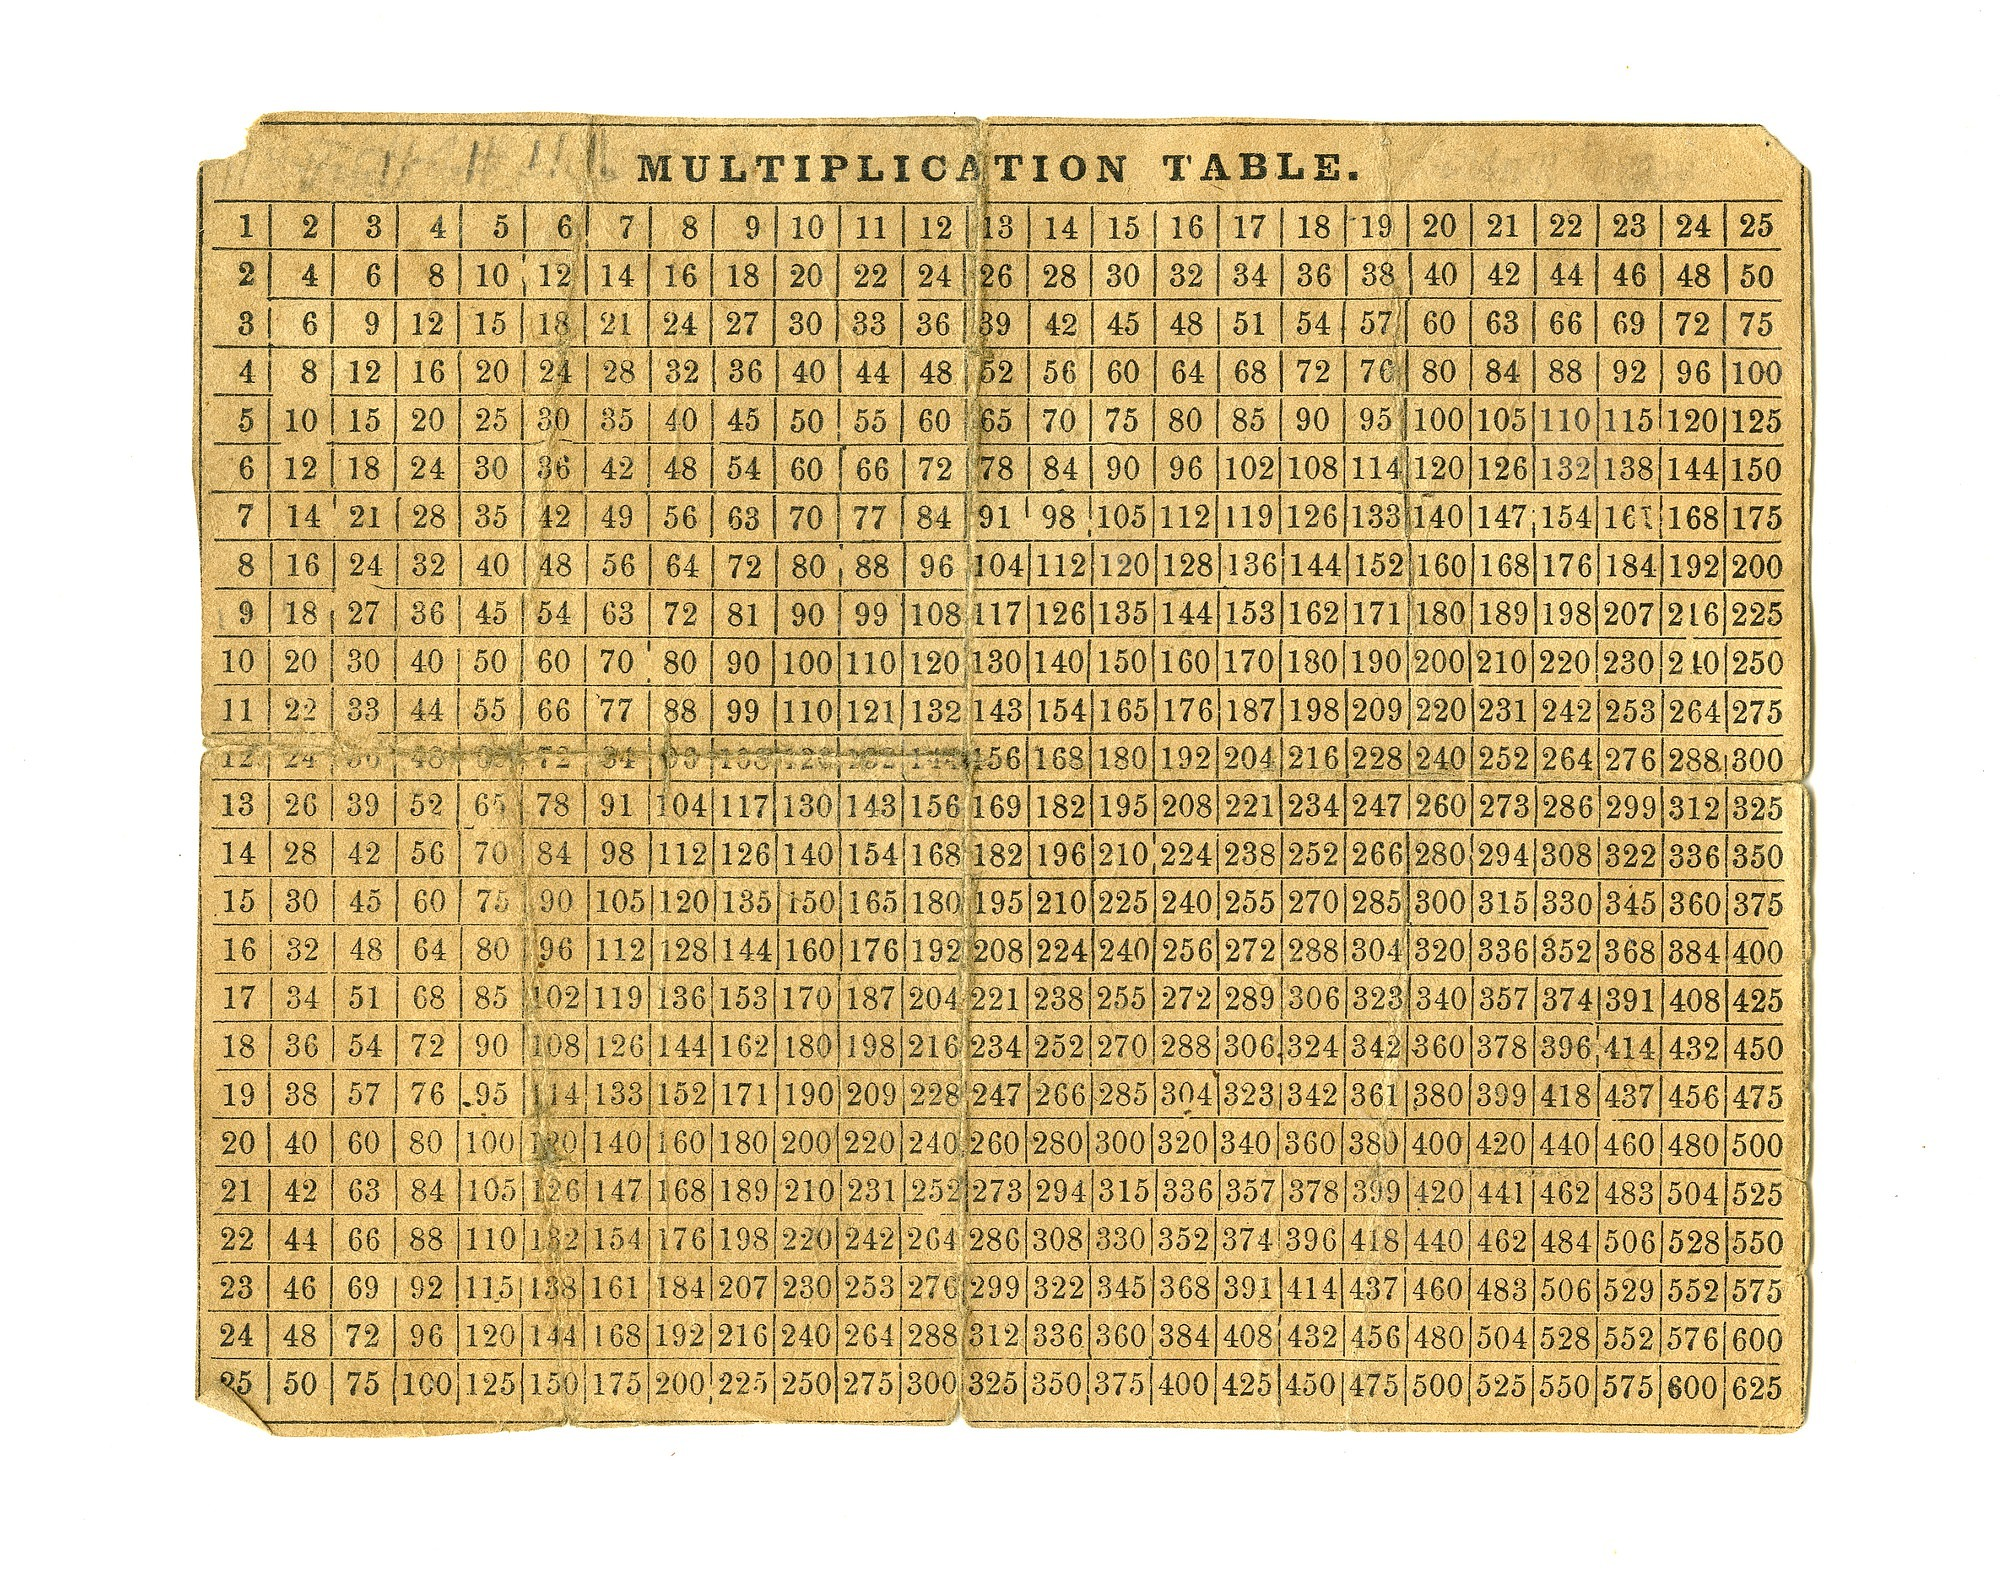 Multiplication table national museum of american history multiplication table gamestrikefo Image collections